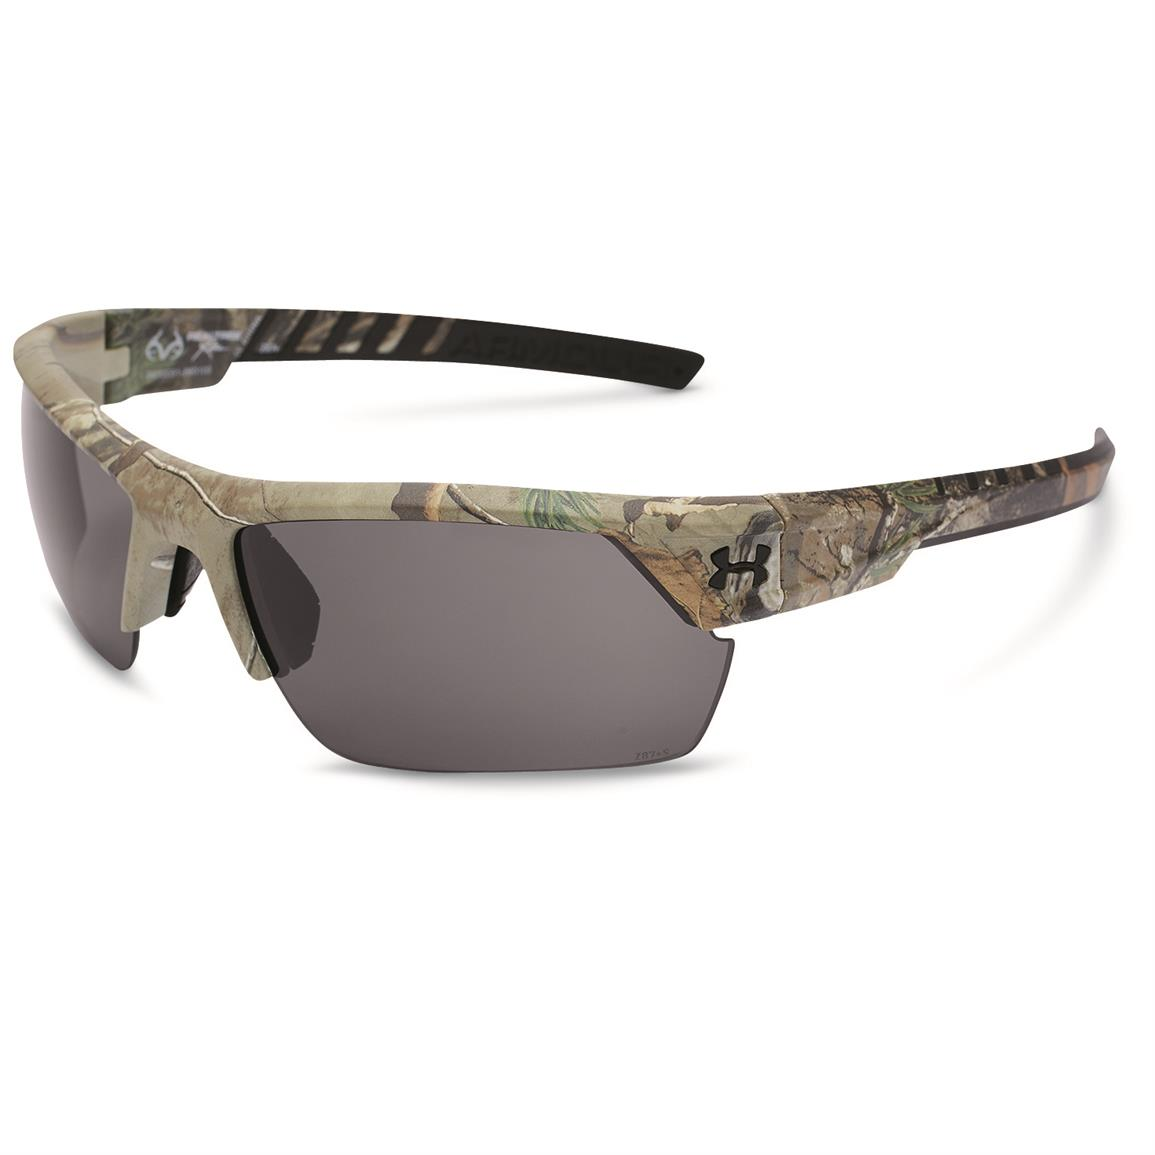 Under Armour Men's Igniter 2.0 Satin Realtree Sunglasses, Realtree Gray